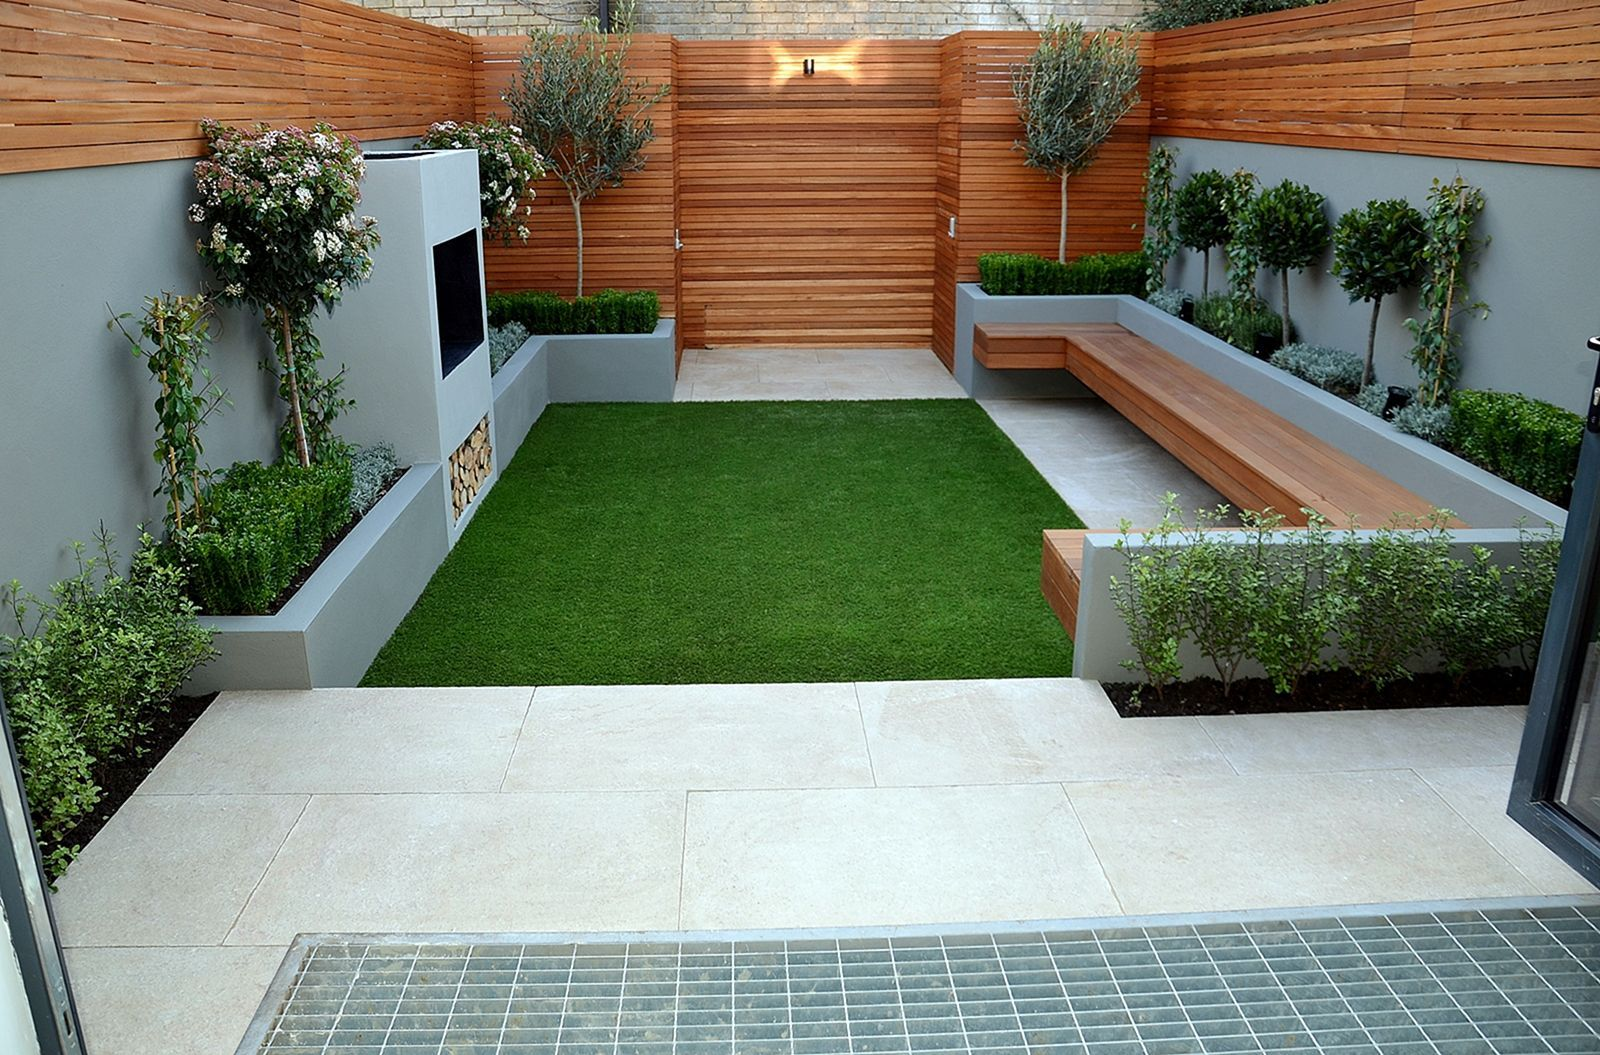 24 Marvelous Simple Backyard Landscaping Ideas On A Budget Urban